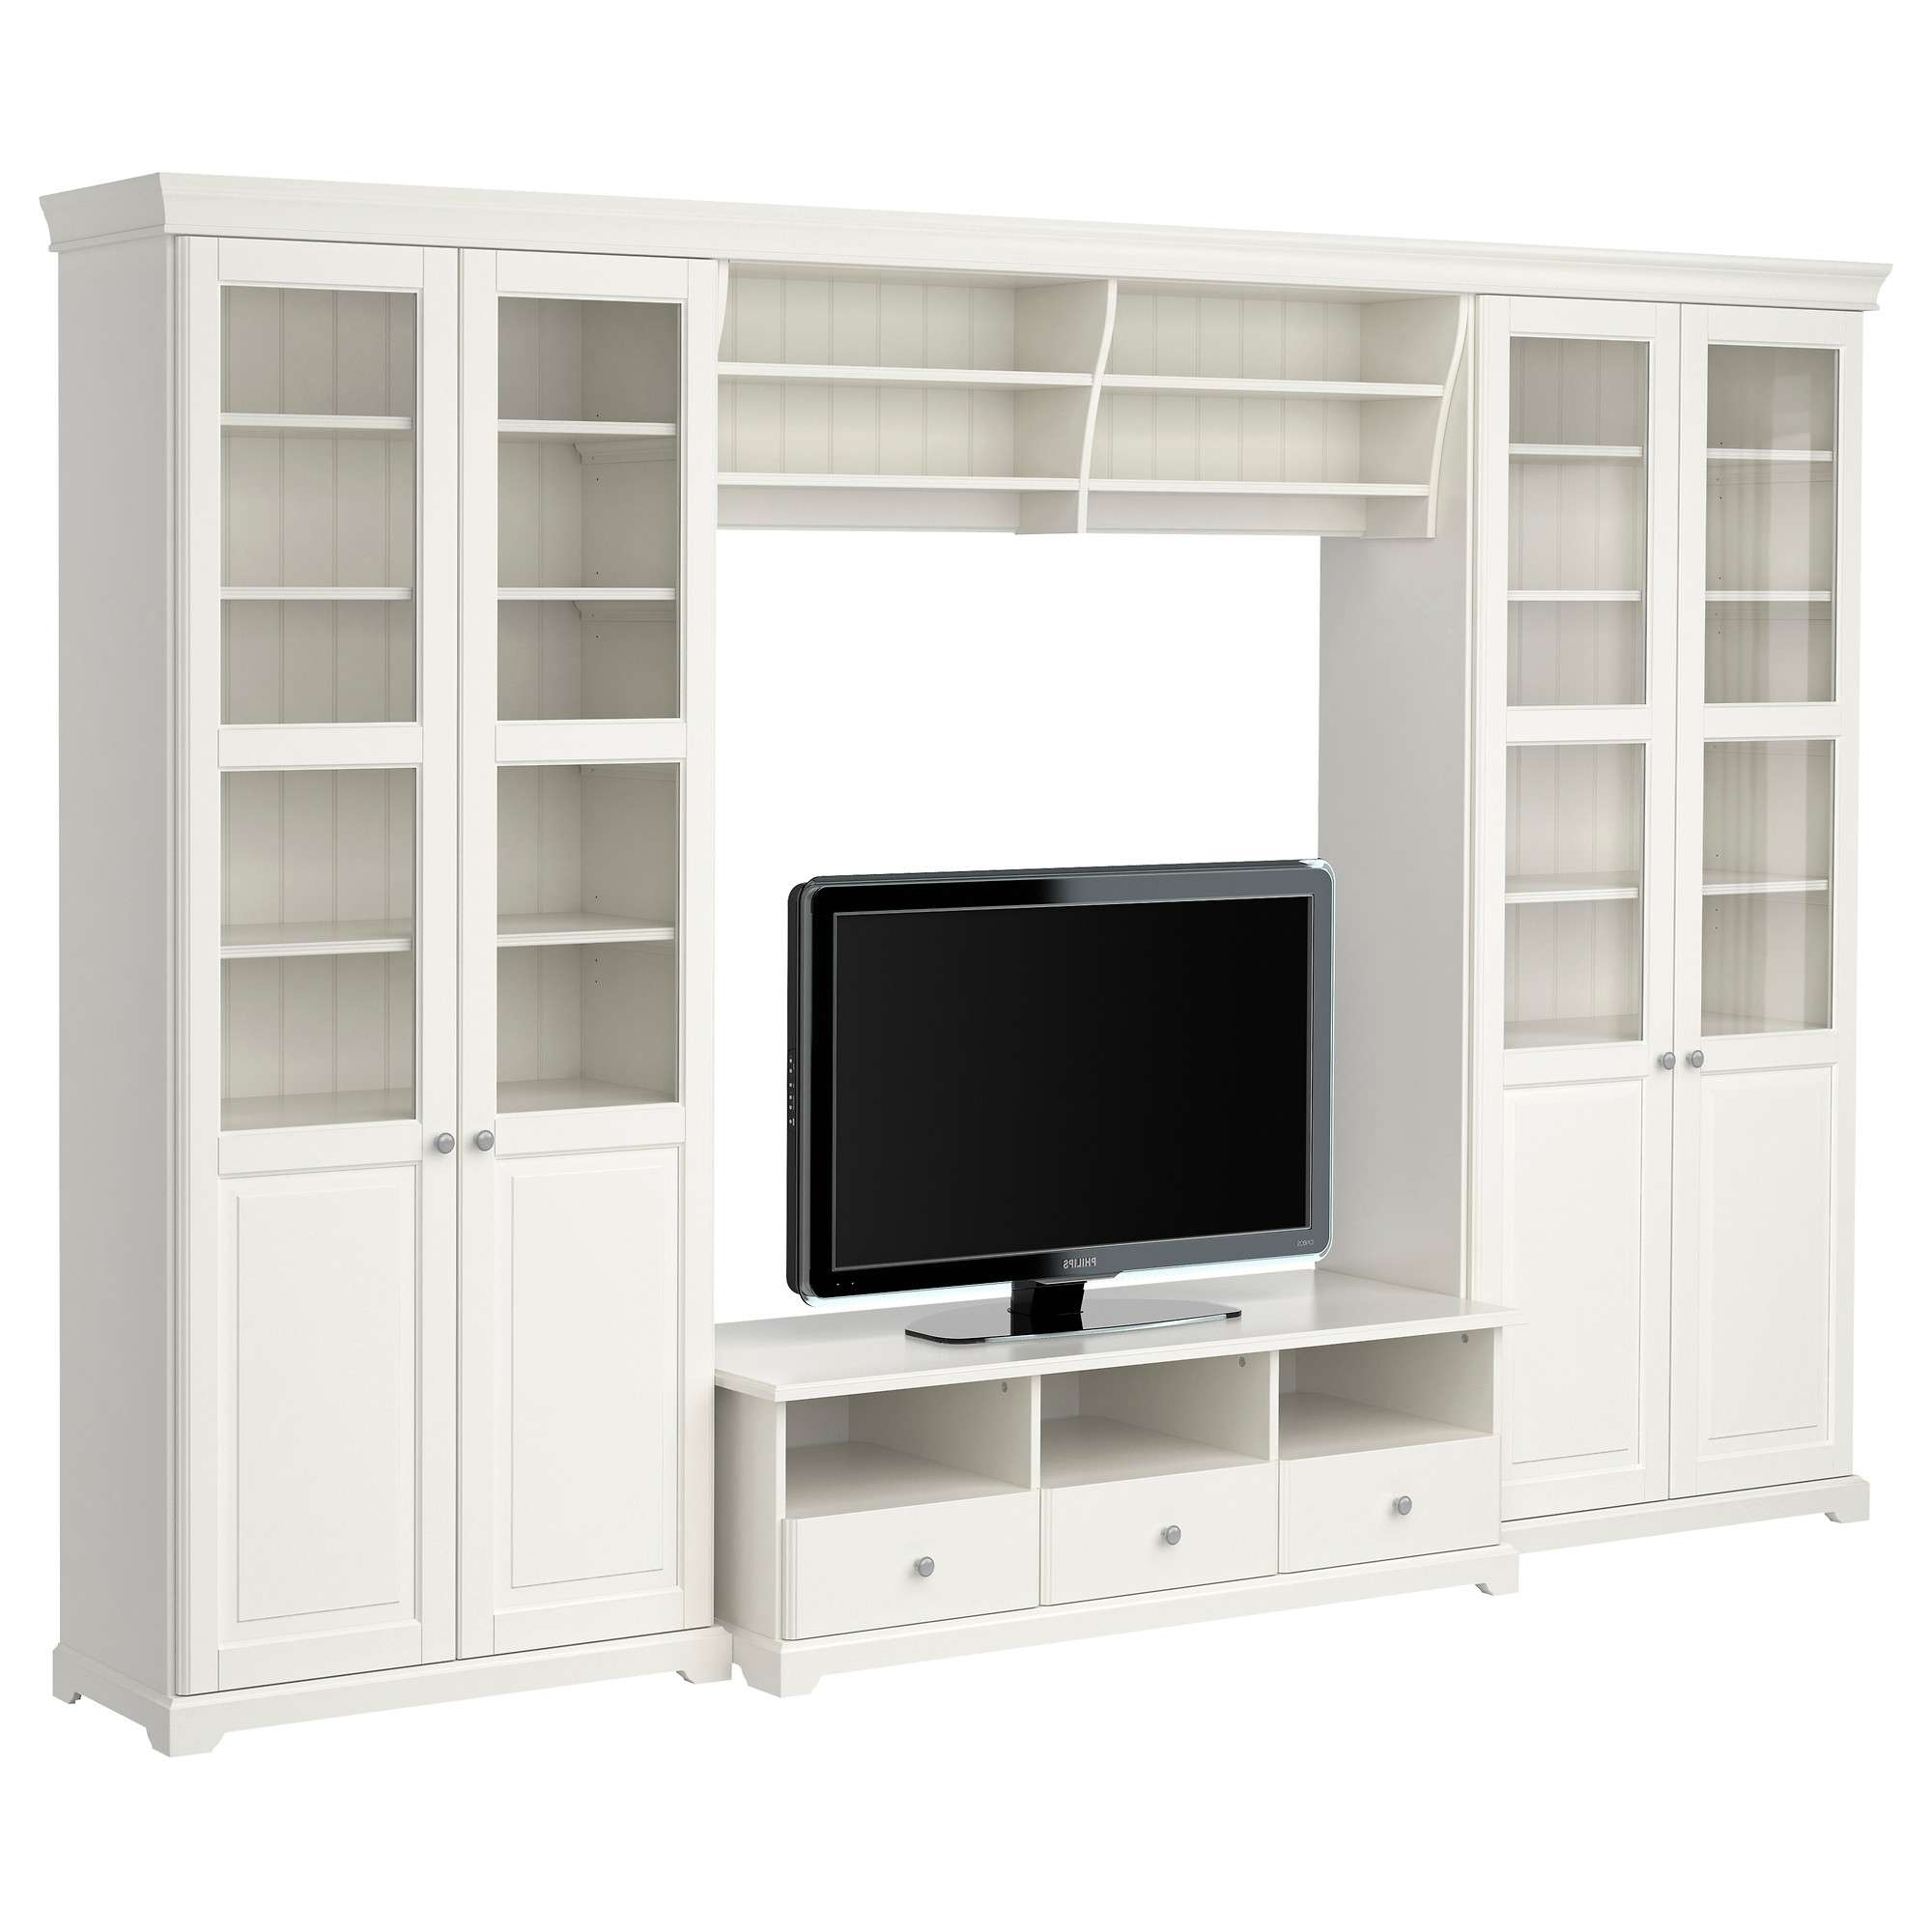 Tv Stands & Tv Units | Ikea Intended For Tv Cabinets With Storage (View 9 of 20)